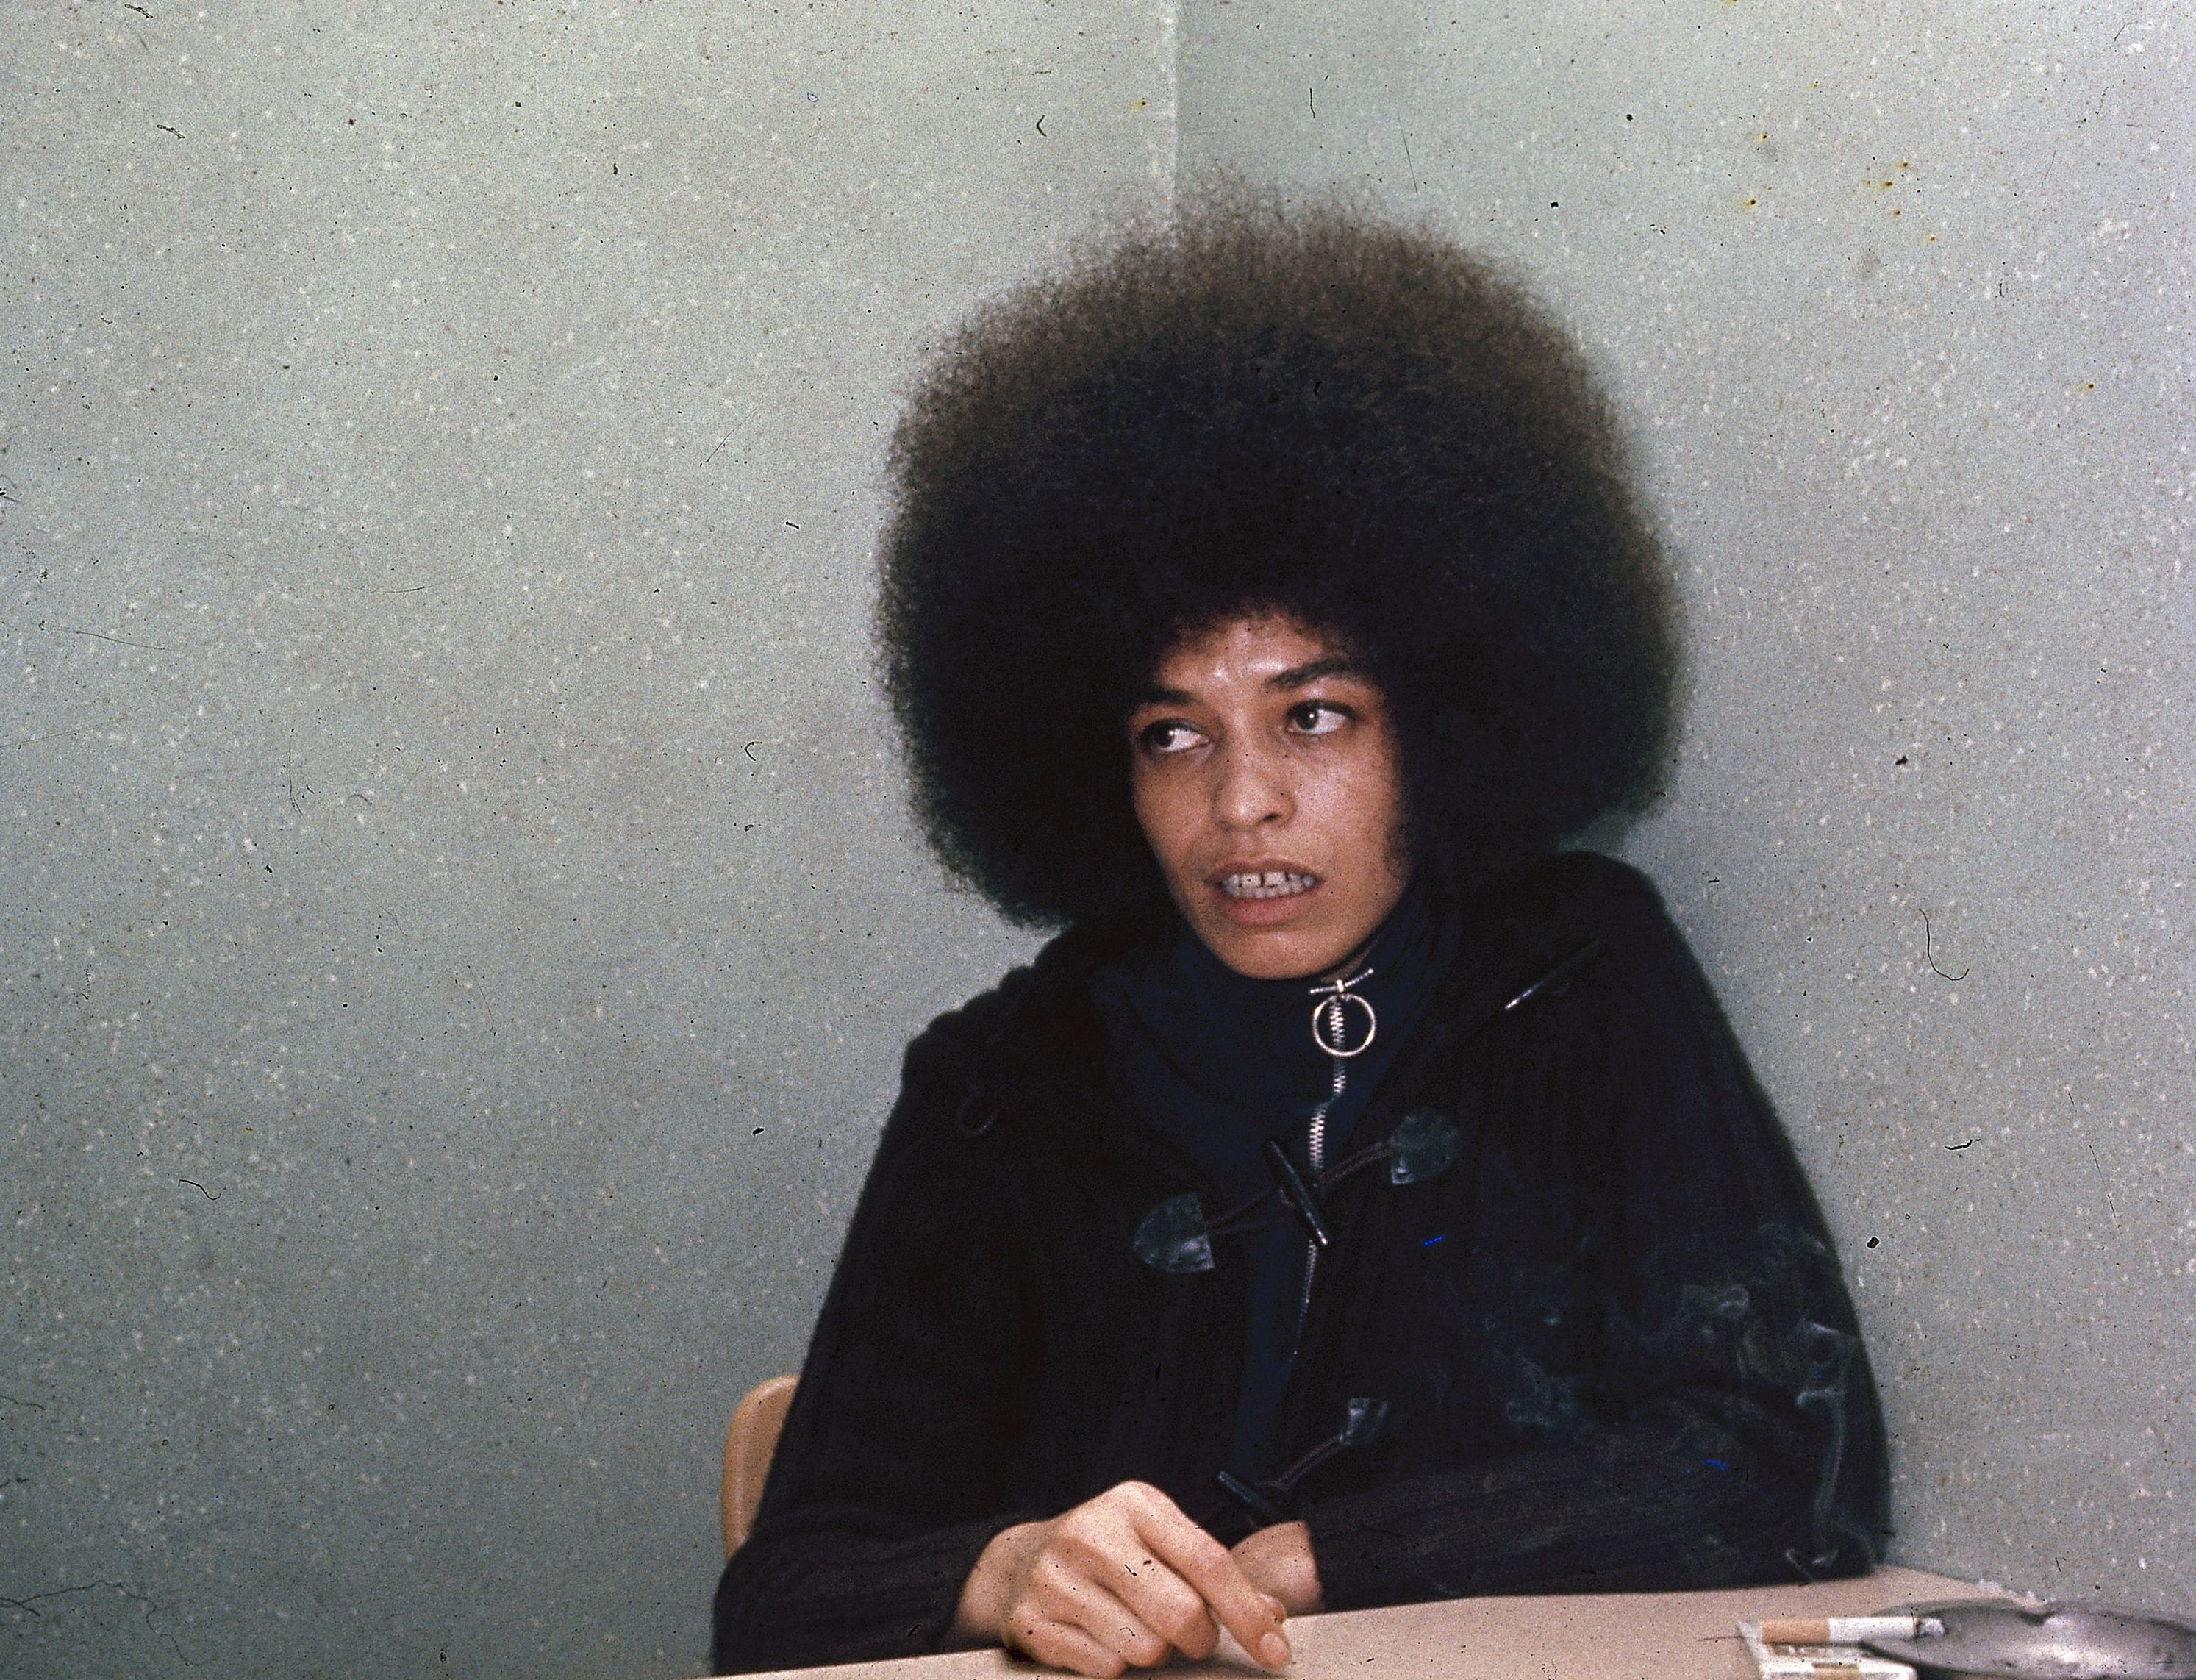 Radical spokeswoman Angela Davis is shown in 1971 Angela Davis, USA